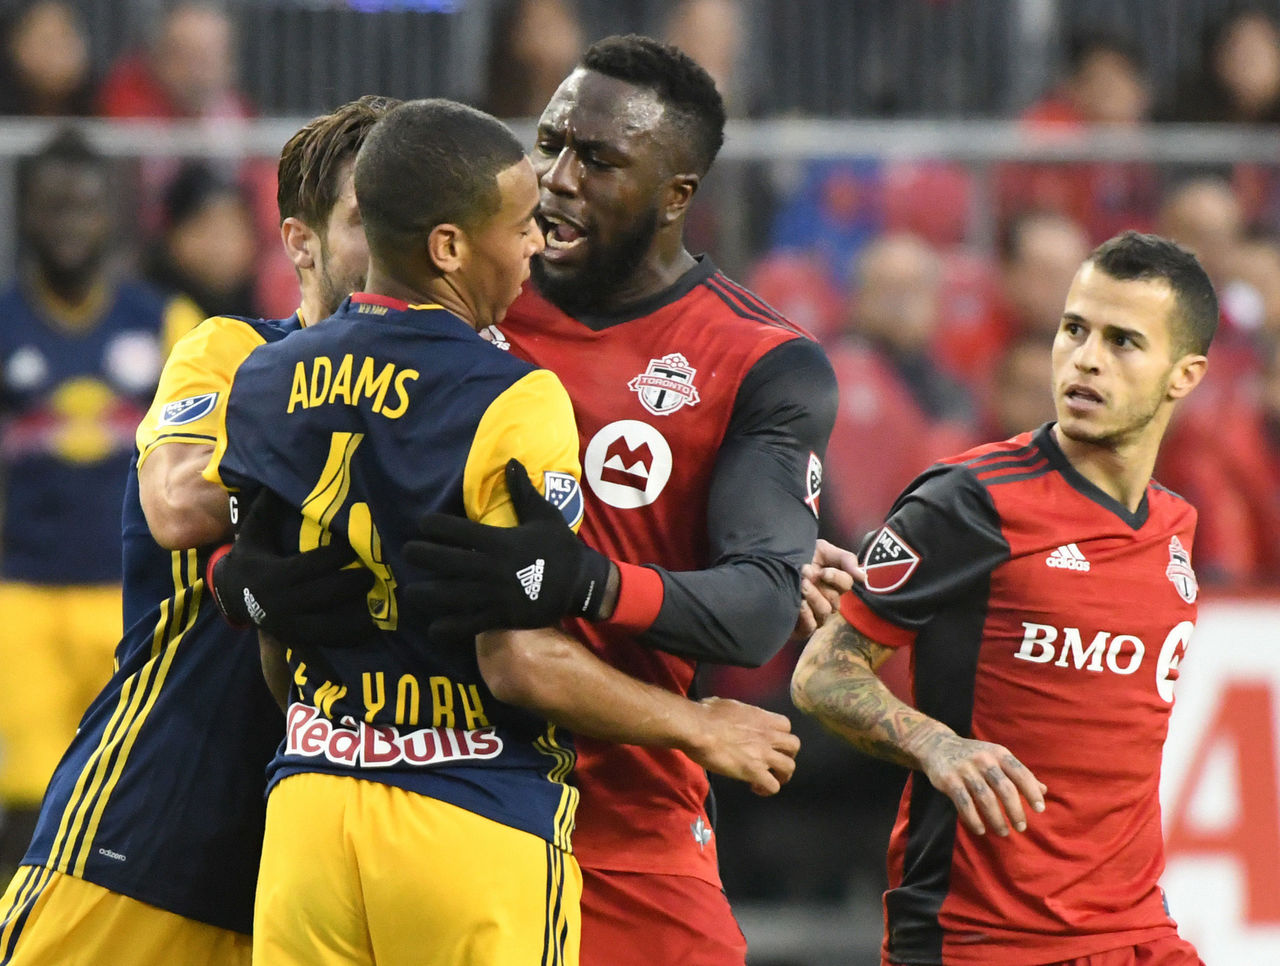 Cropped_2017-11-05t212400z_839957642_nocid_rtrmadp_3_mls-eastern-conference-semifinal-new-york-red-bulls-at-toronto-fc